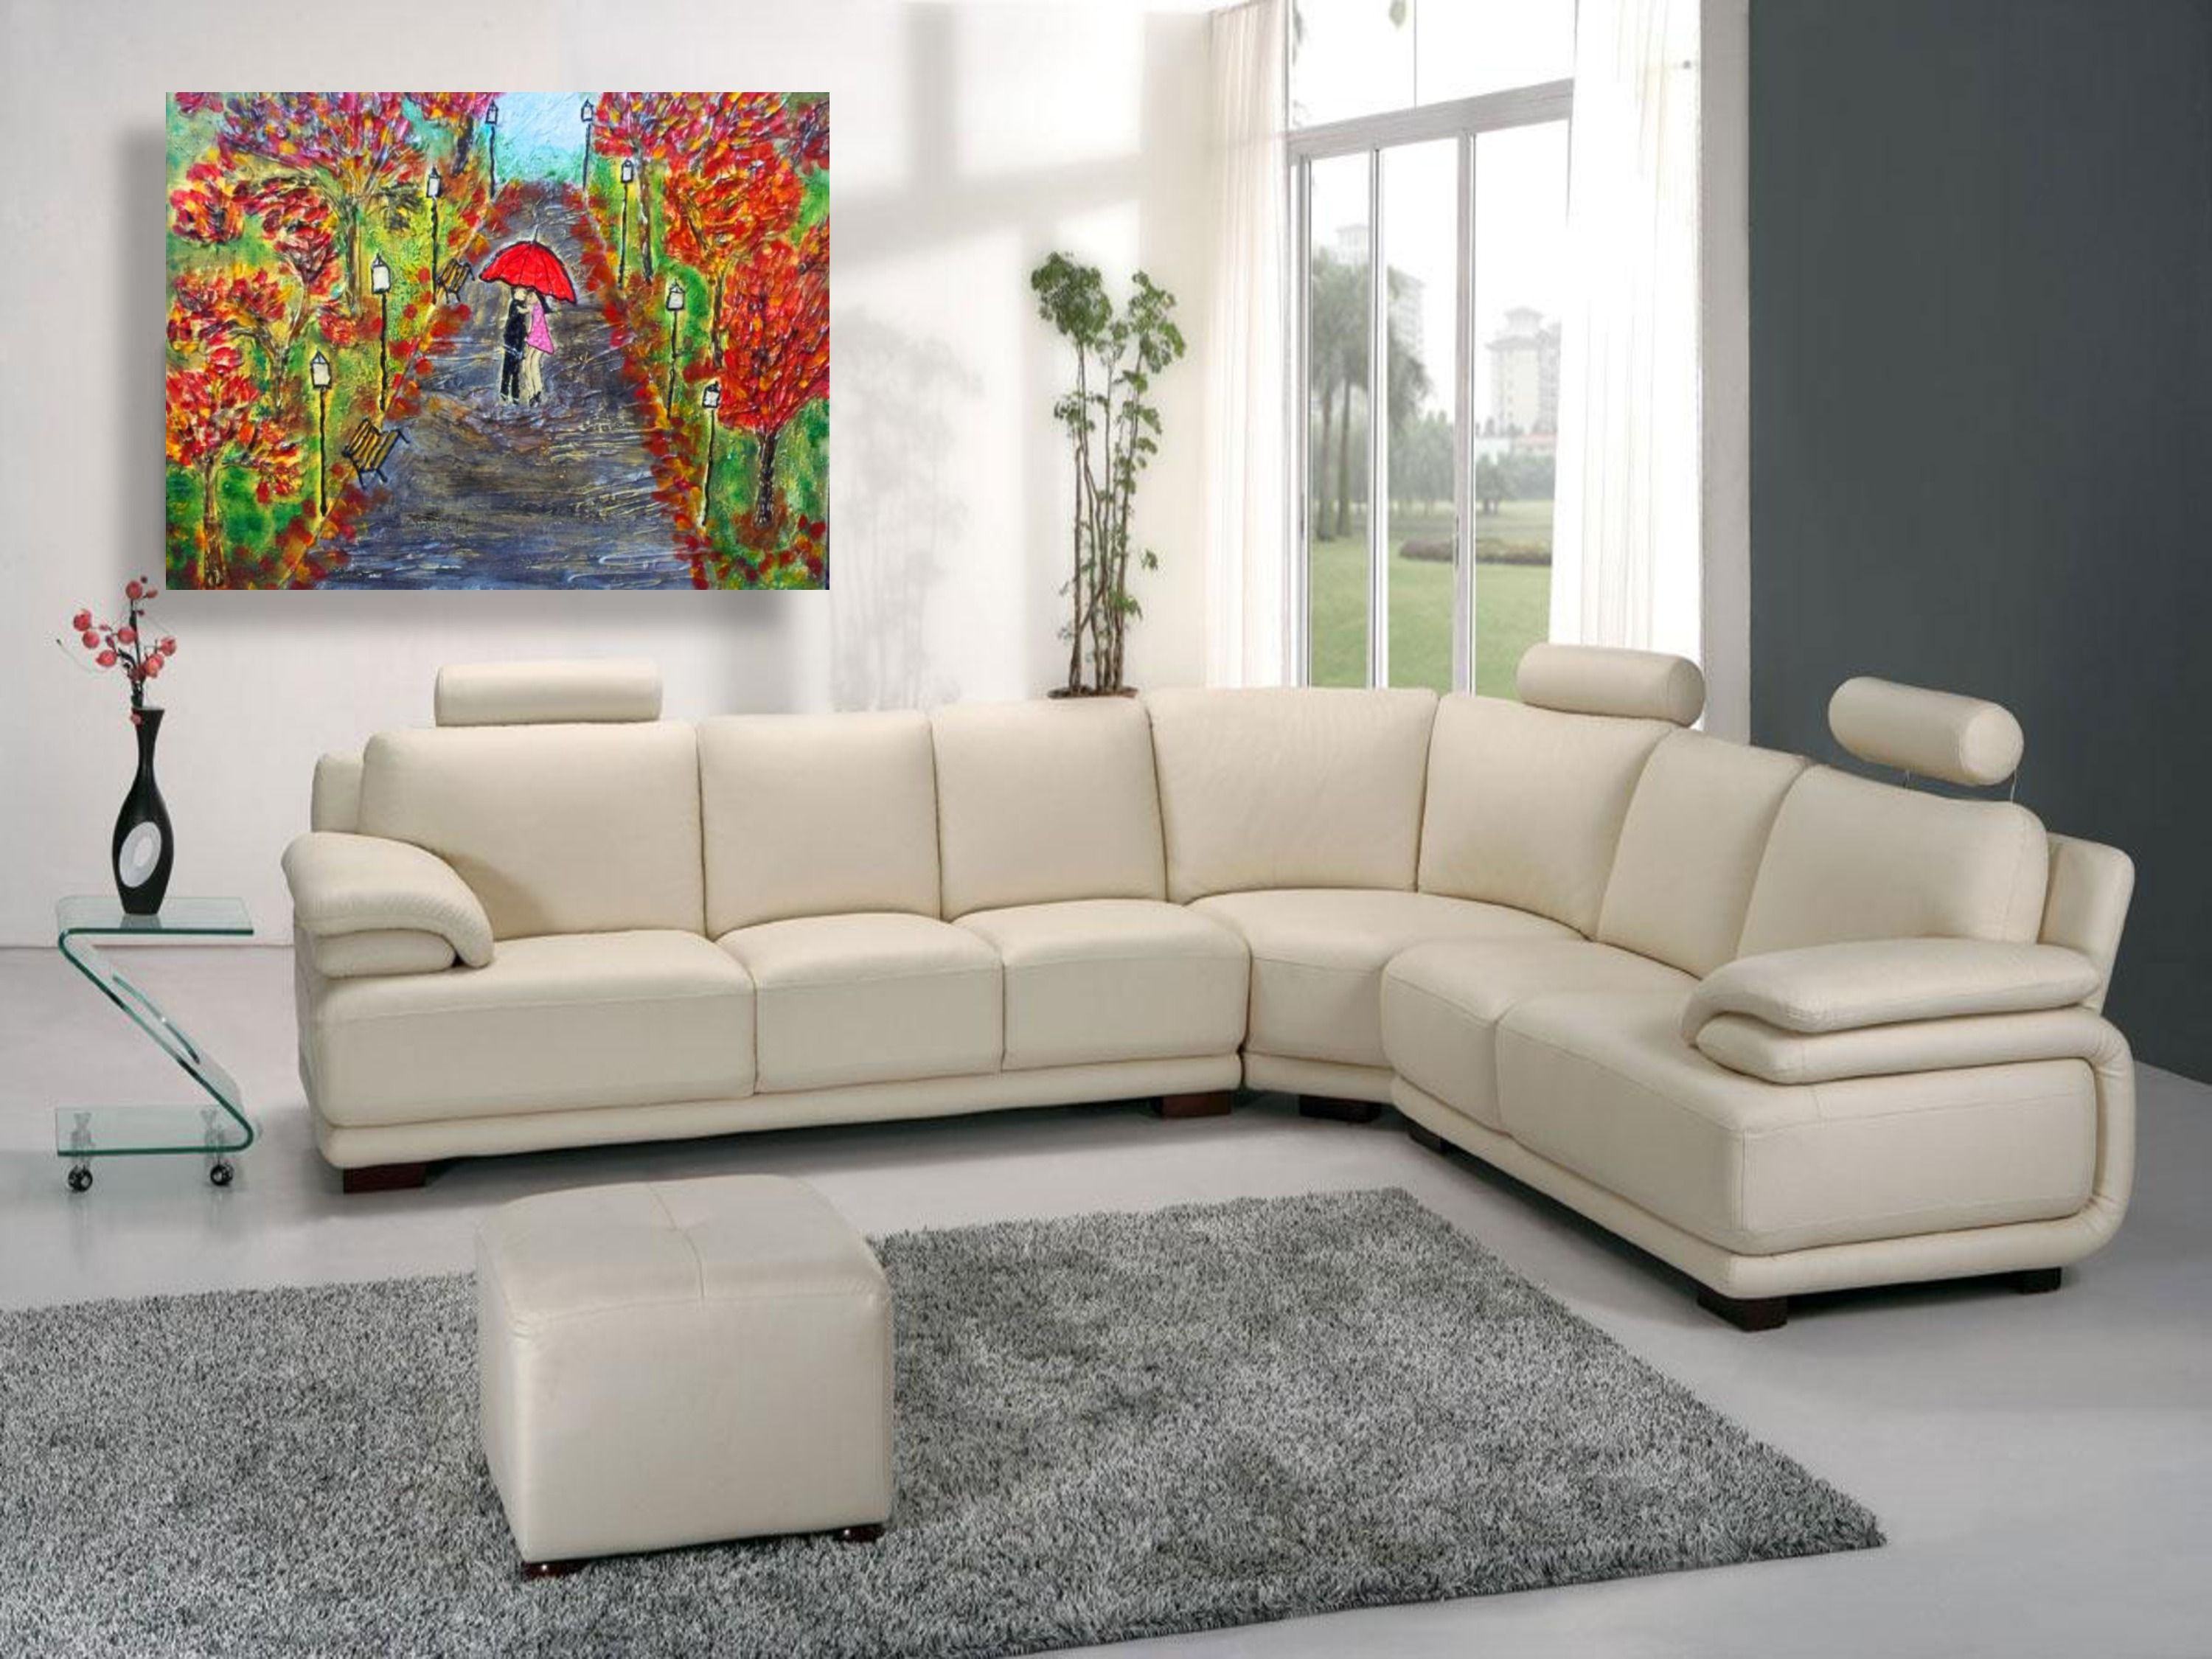 Textured Art Painting Modern Leather Sectional Sofas Sectional Sofa With Recliner Sectional Sofa